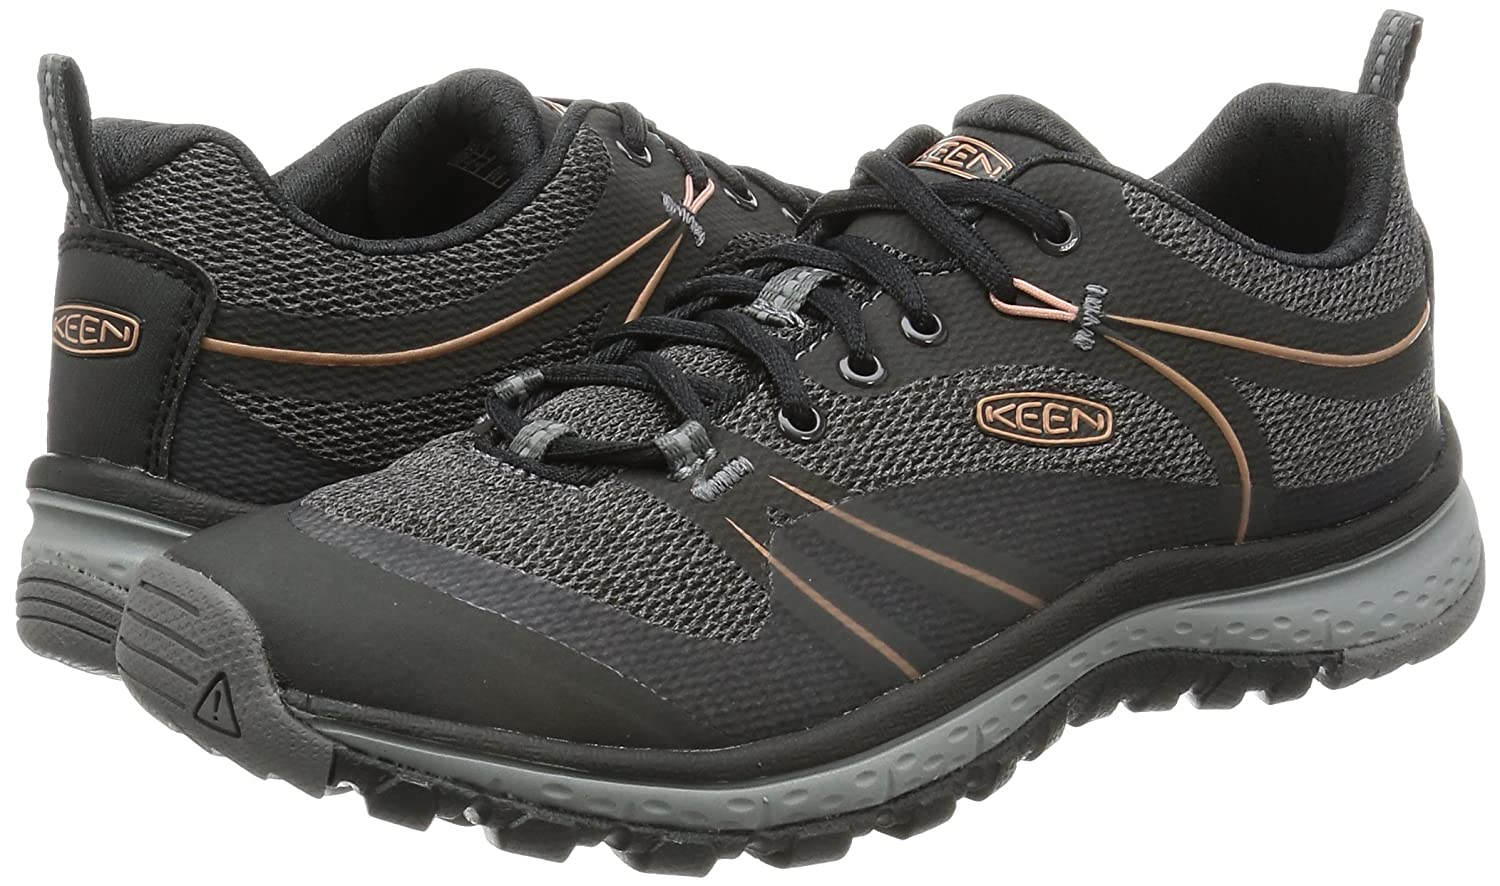 KEEN Women's Terradora Hiking Shoe B01H8GBUSY 7.5 B(M) US|Raven/Rose Dawn